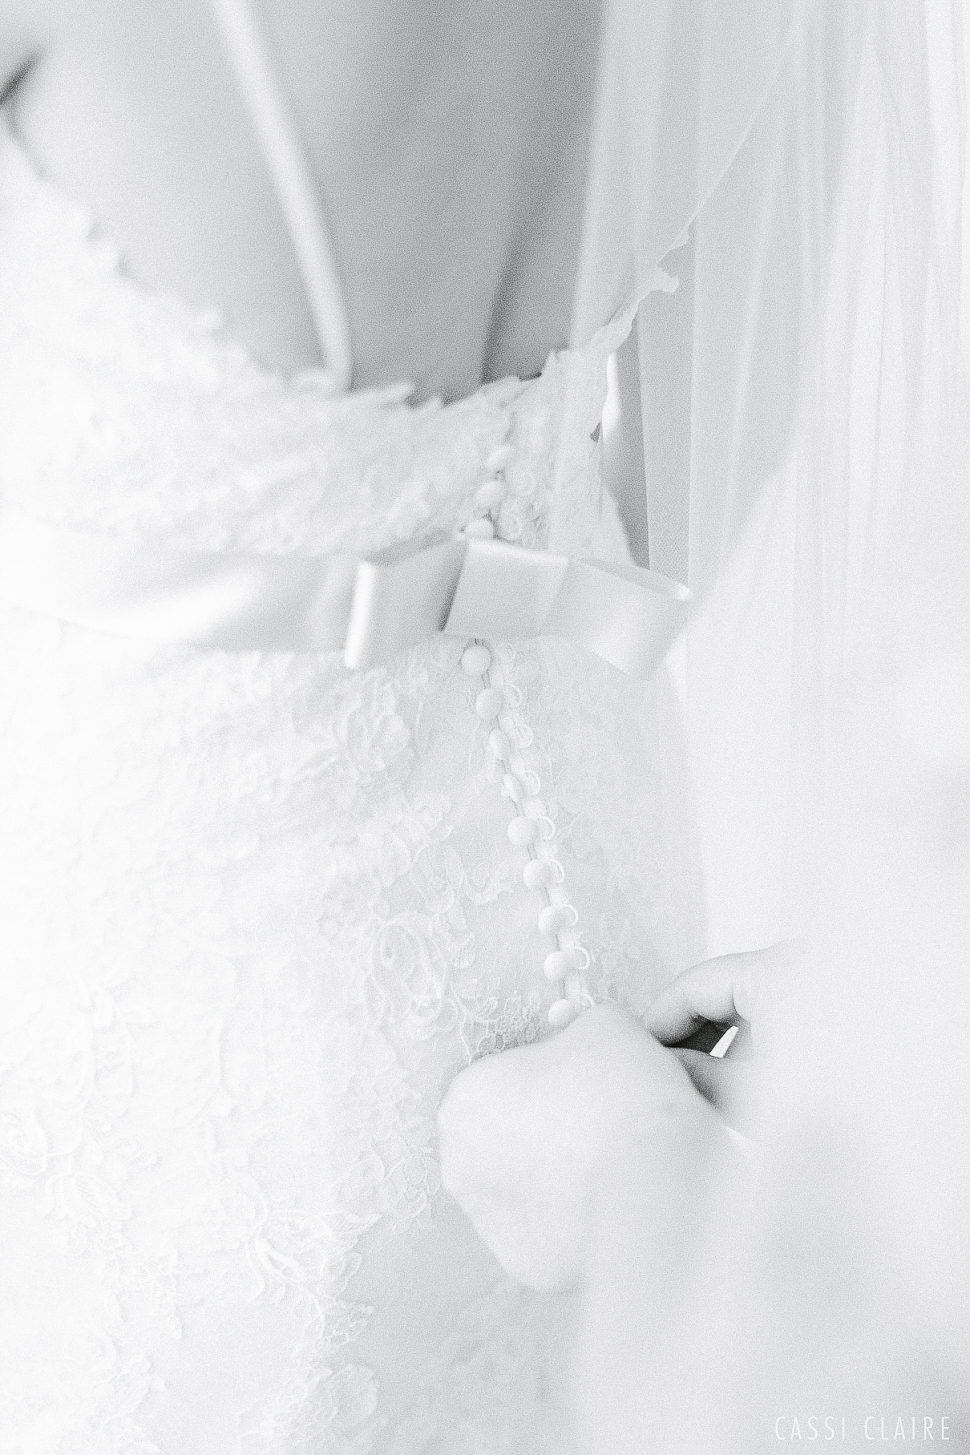 Highlands-Country-Club-Wedding-Photographer_CassiClaire_08.jpg